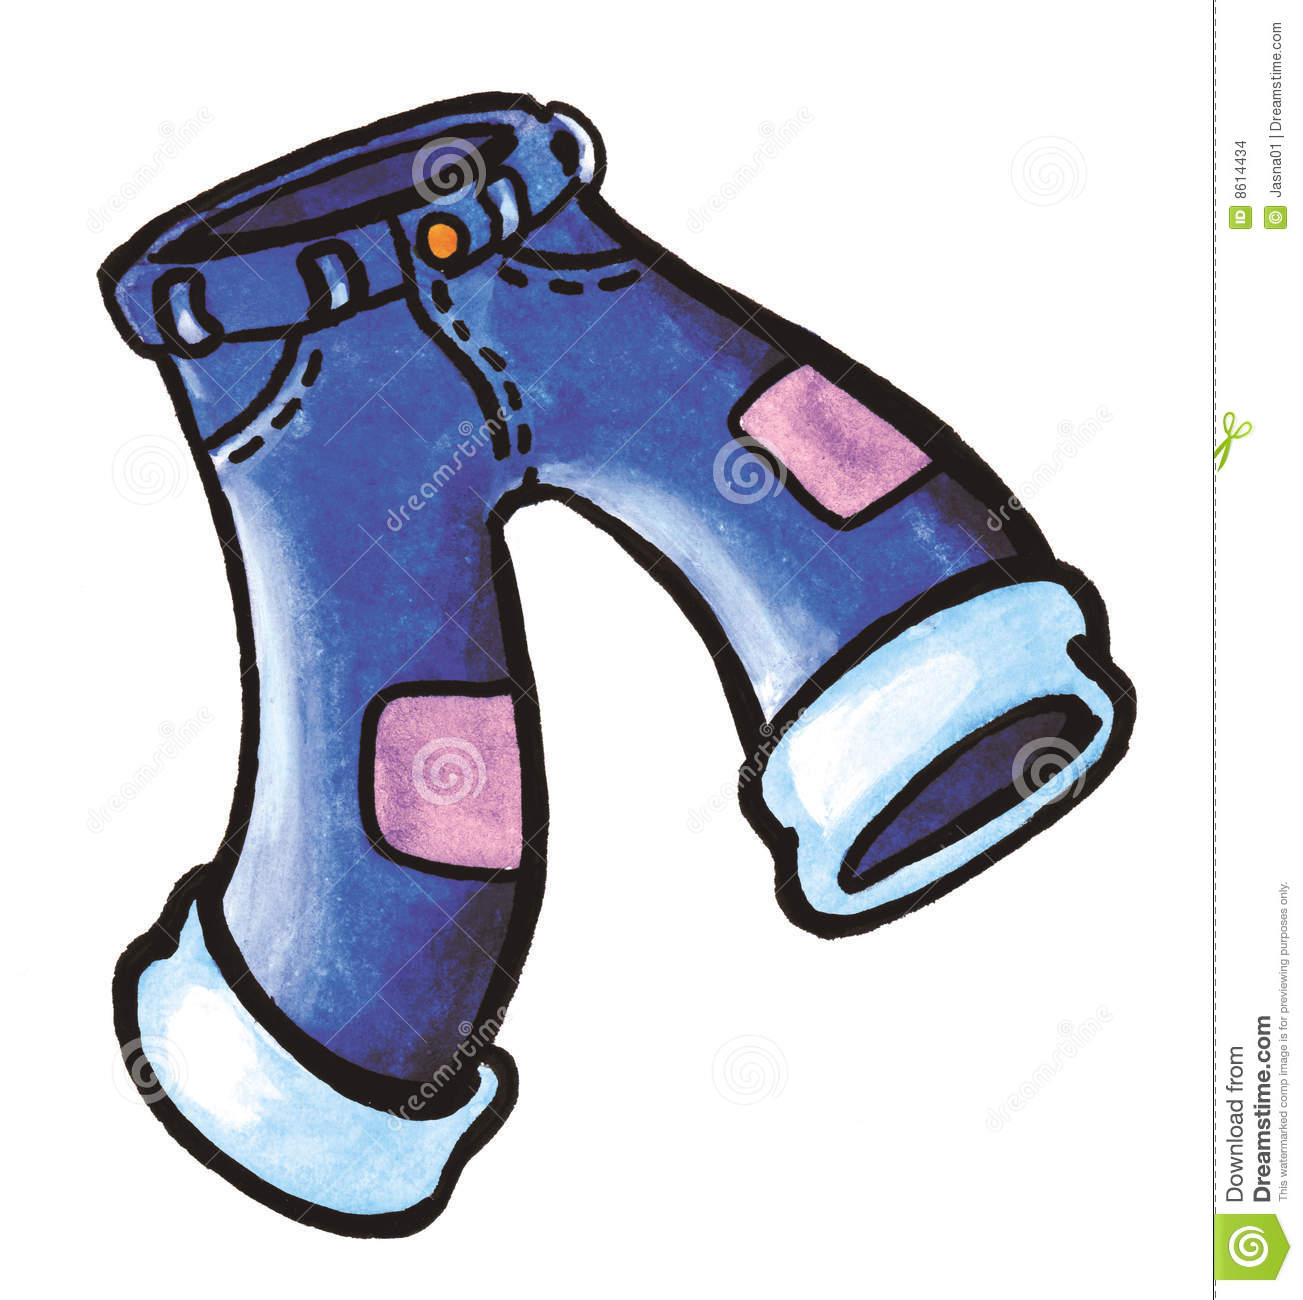 Blue Jeans Trousers Stock Images - Image: 8614434